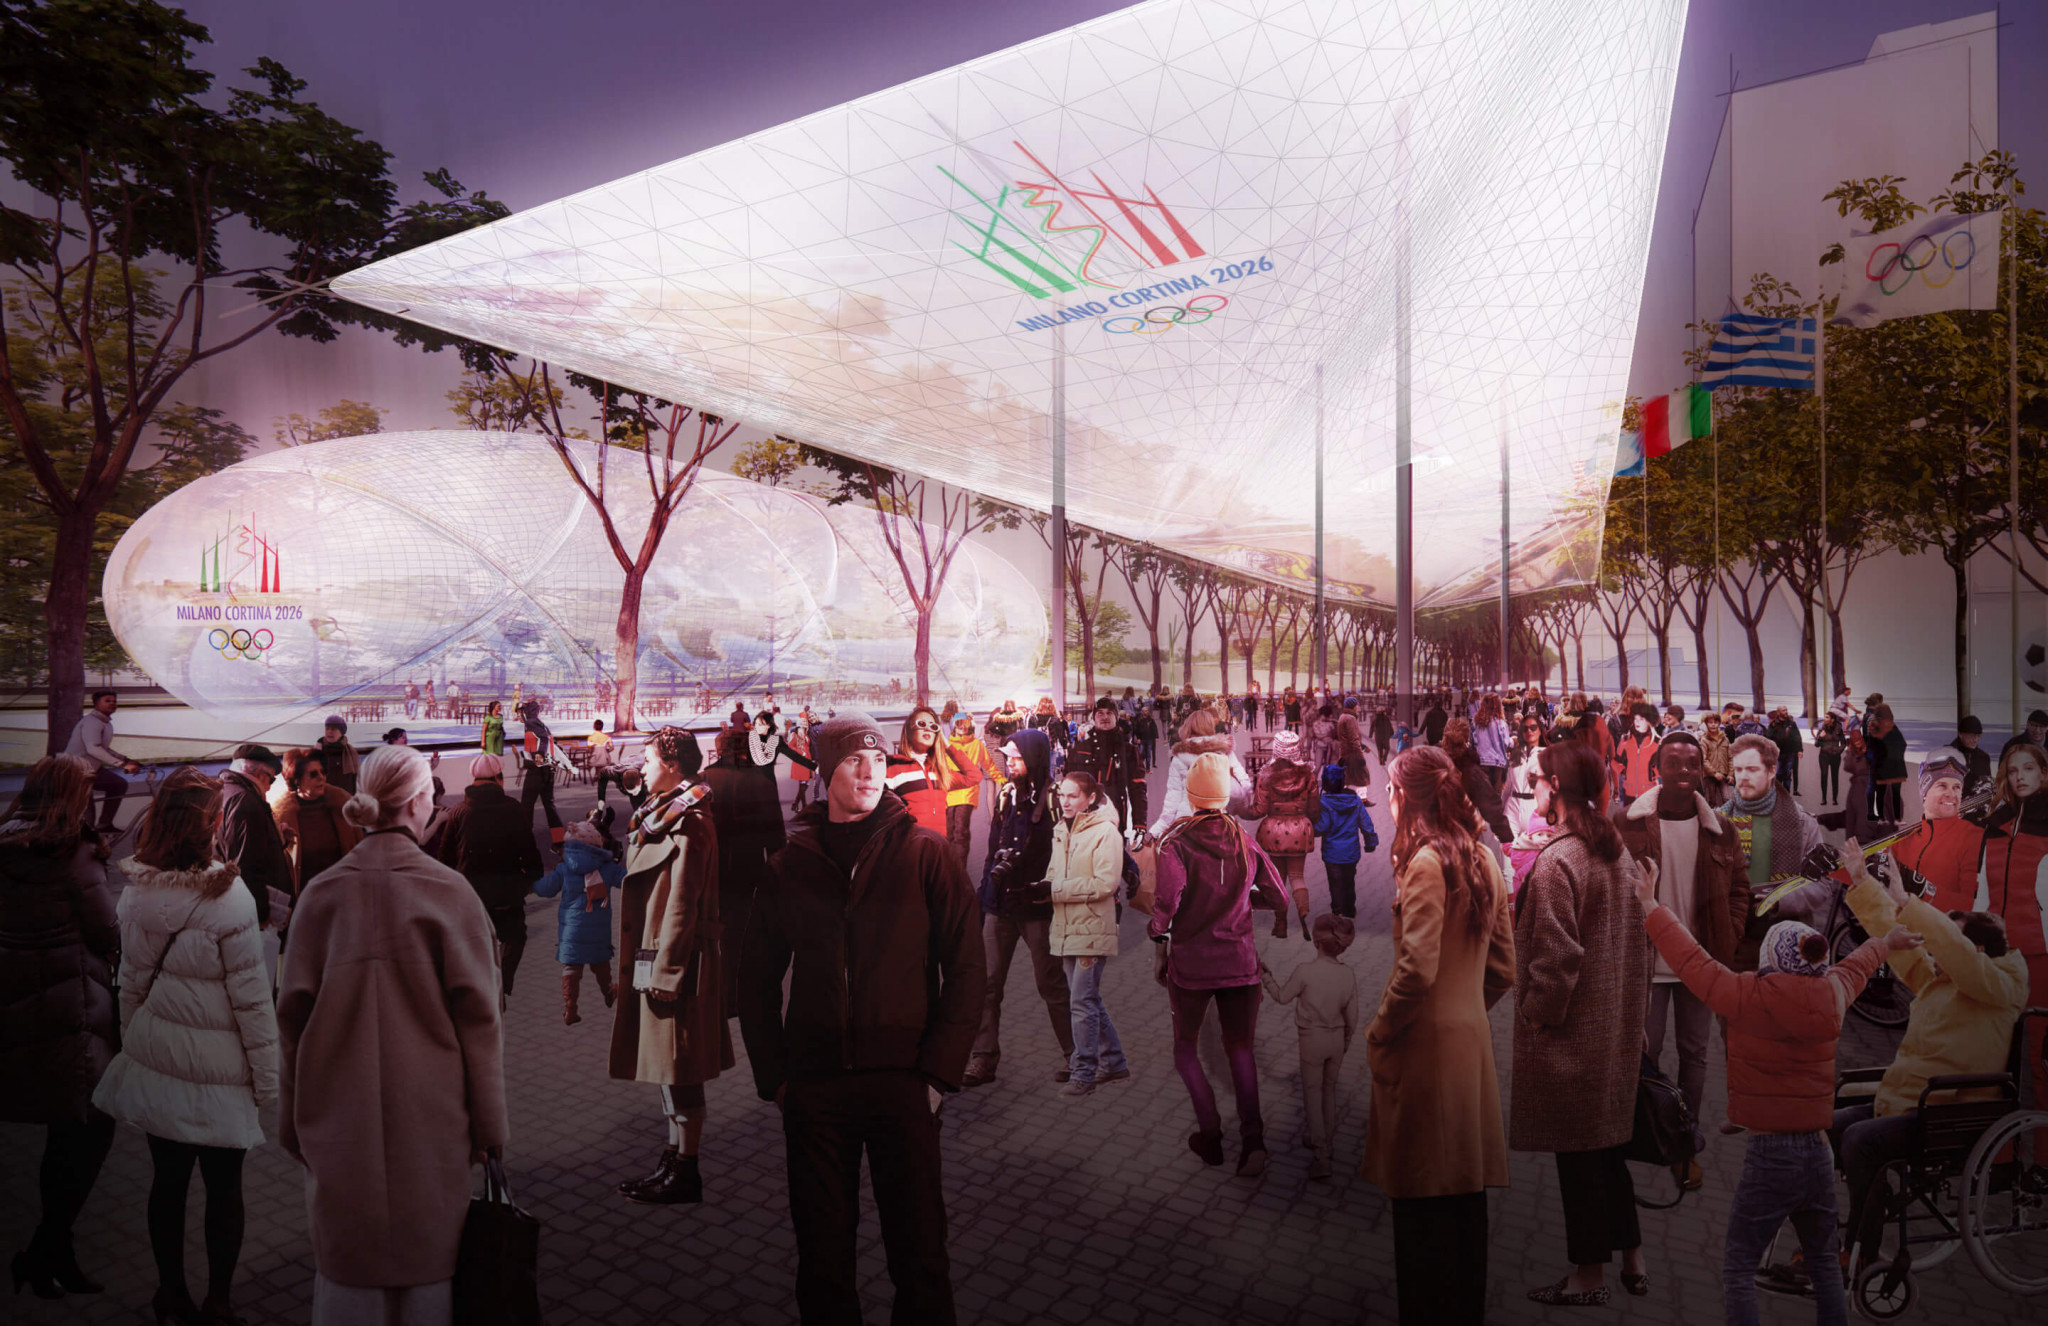 An consortium to masterplan the Olympic Village for Milan Cortina 2026 has been announced ©PLP Architecture